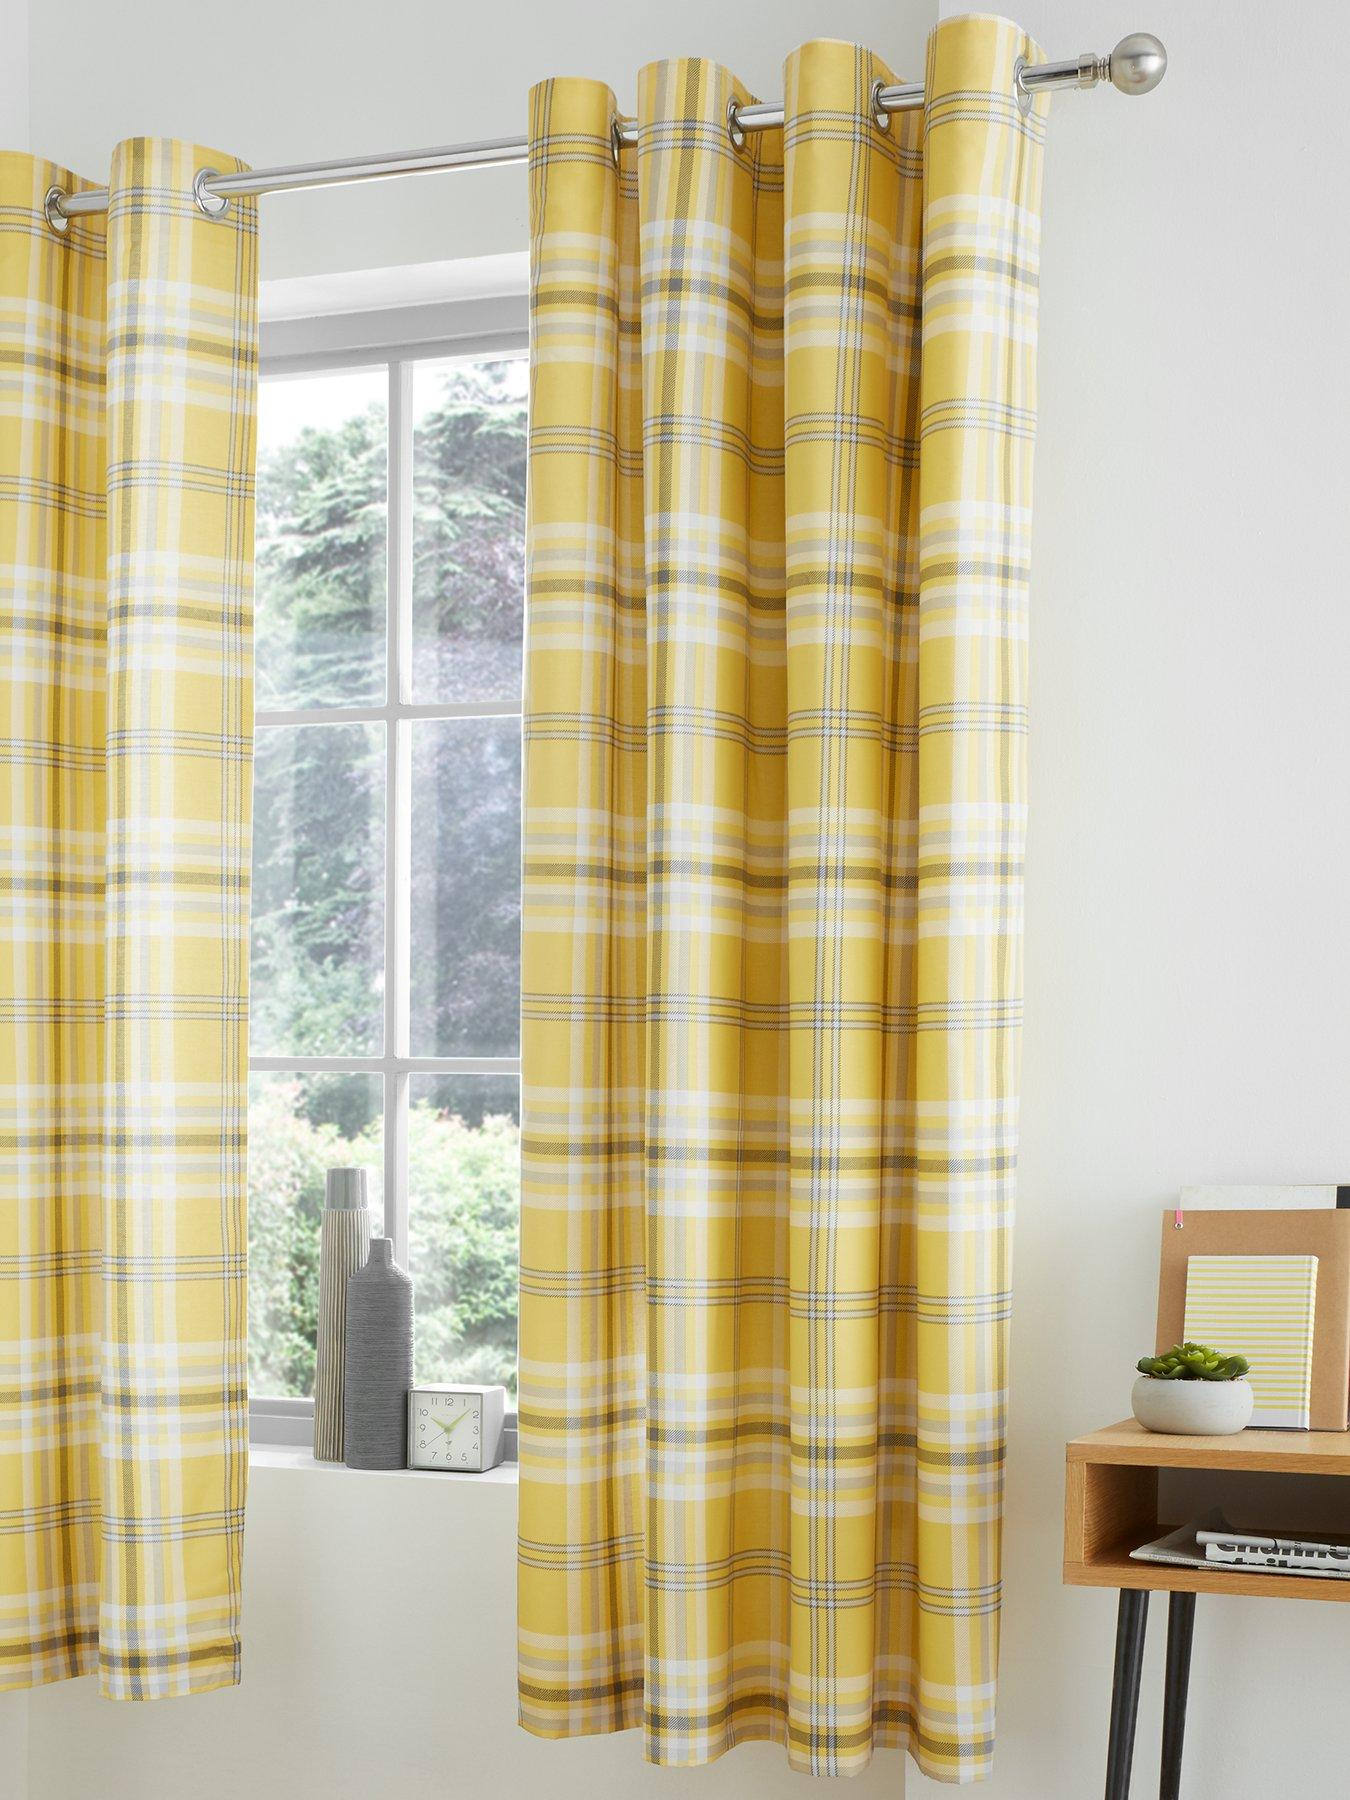 Kelso Geometric Fully Lined Eyelet Ring Top Curtains Navy Blue Ochre Yellow